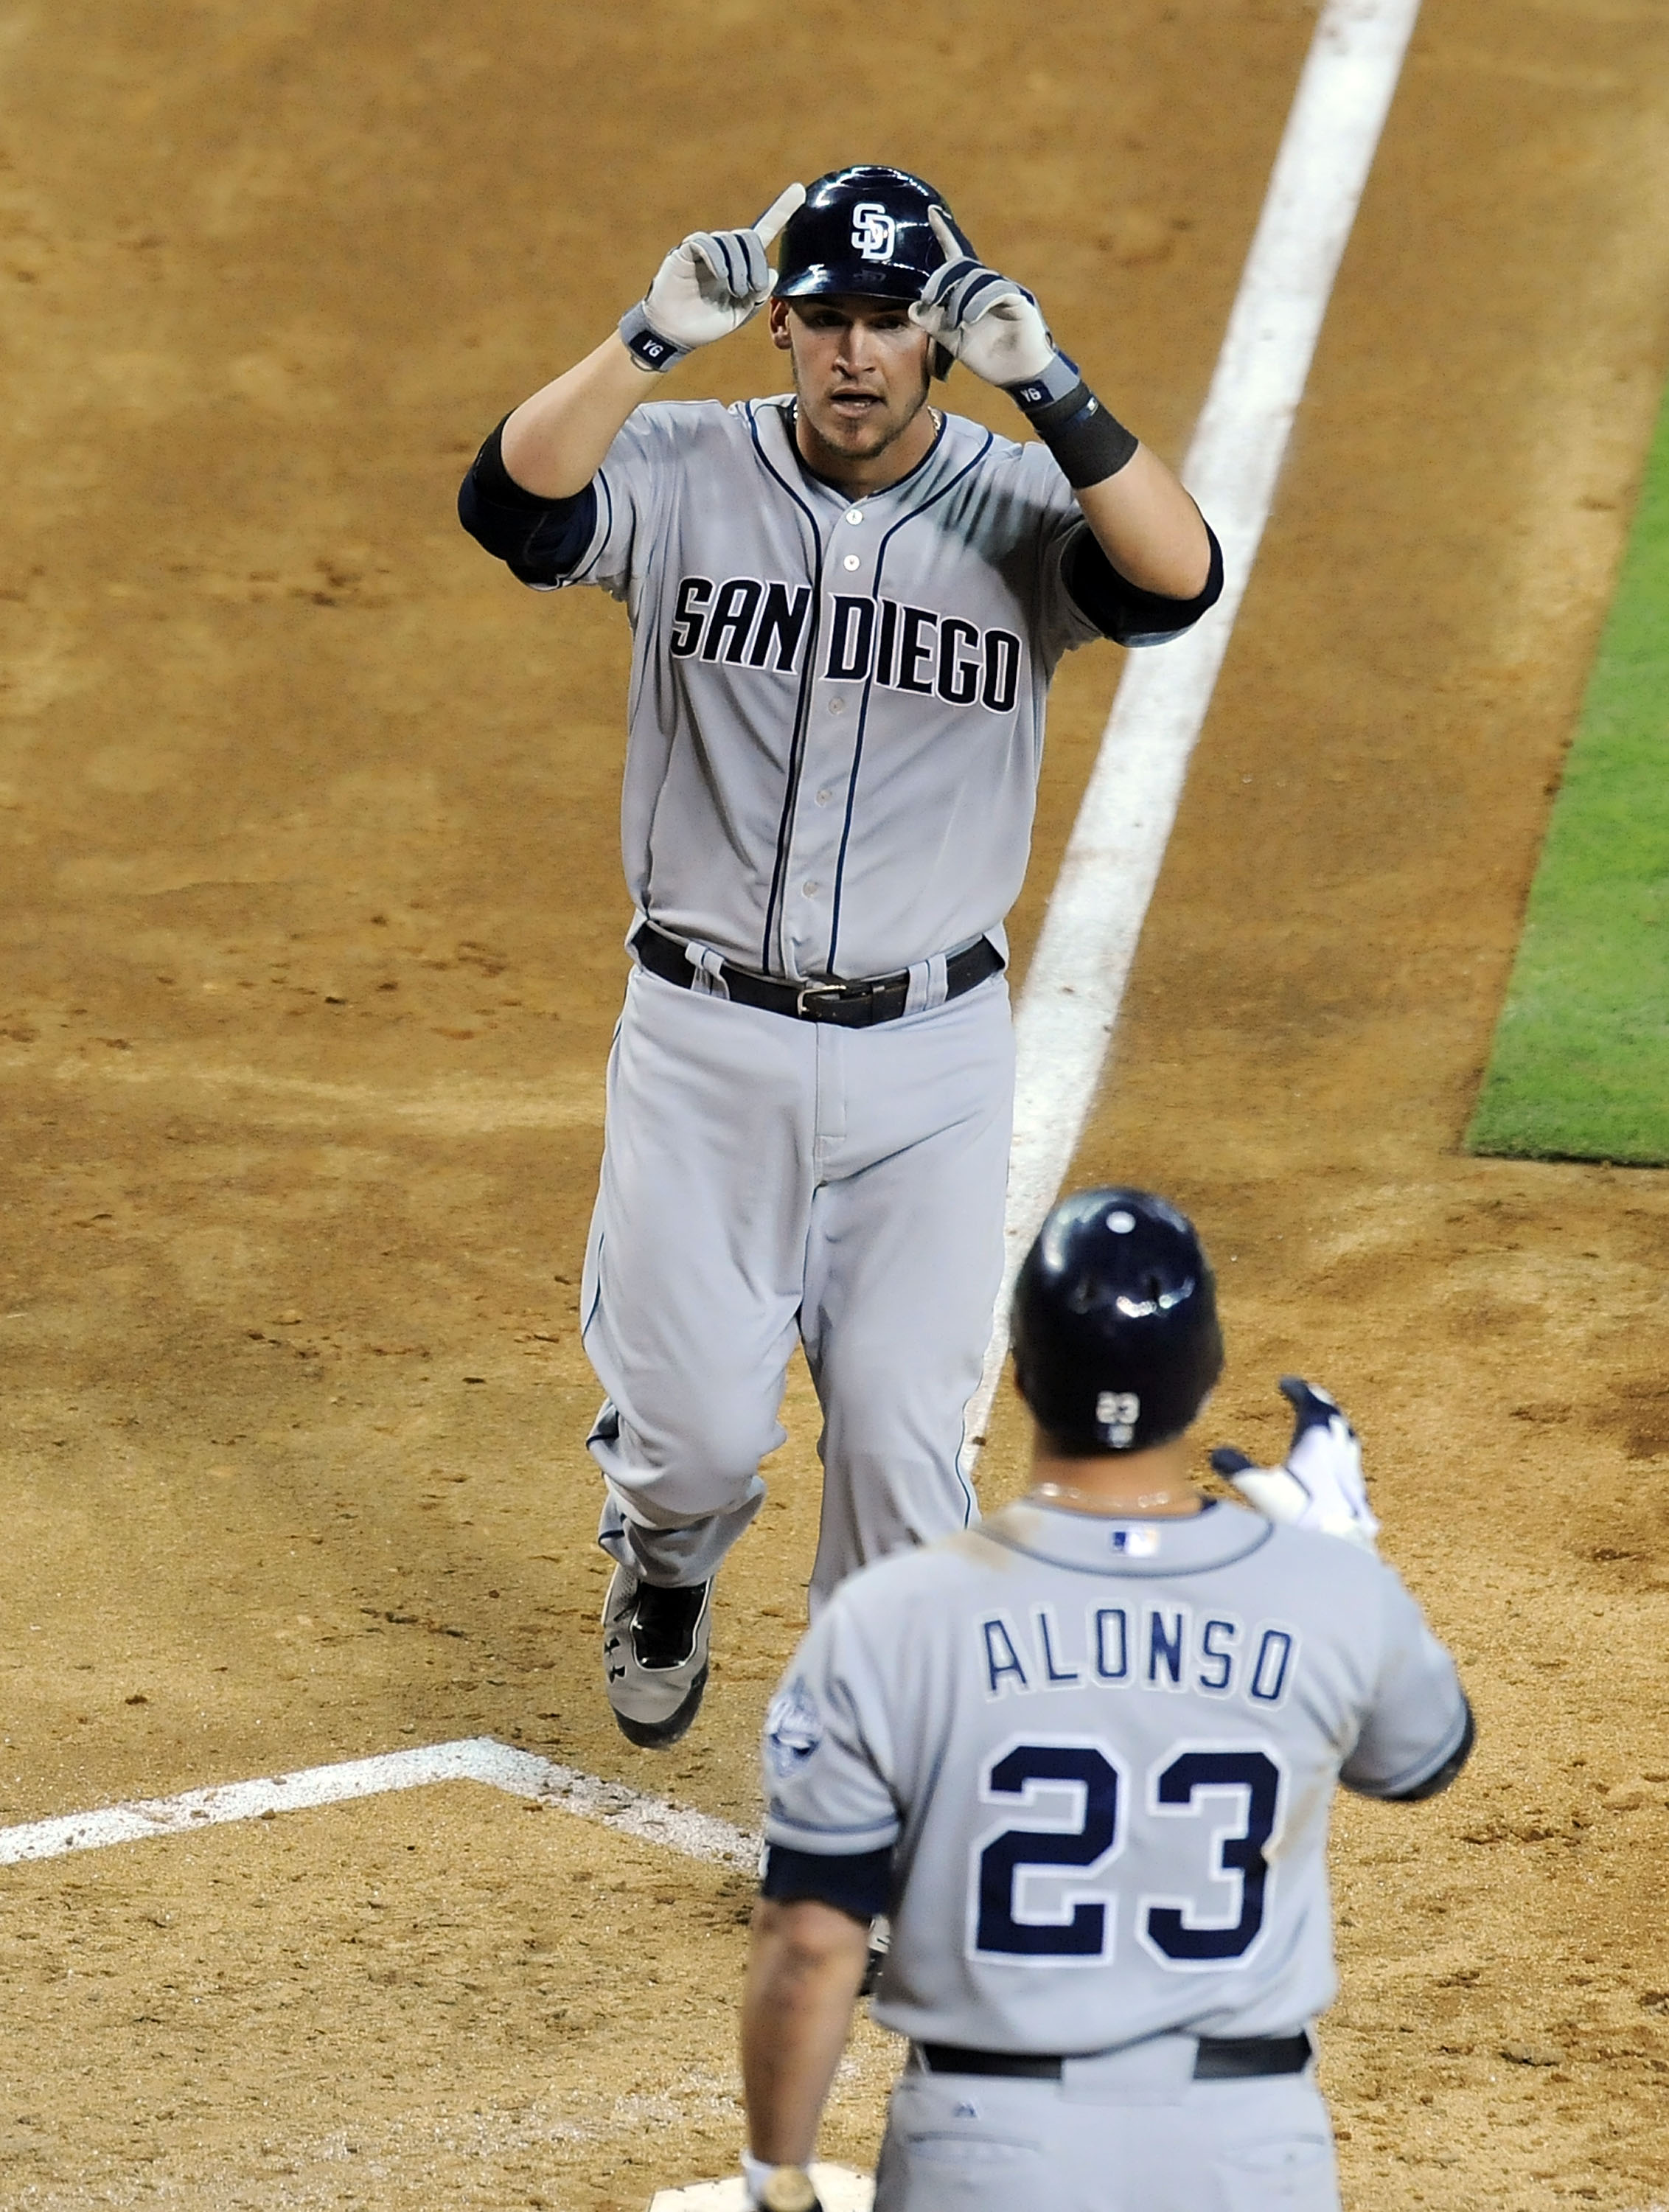 Yasmani Grandal celebrates his homer in the Padres' win over Arizona. (Getty Images)